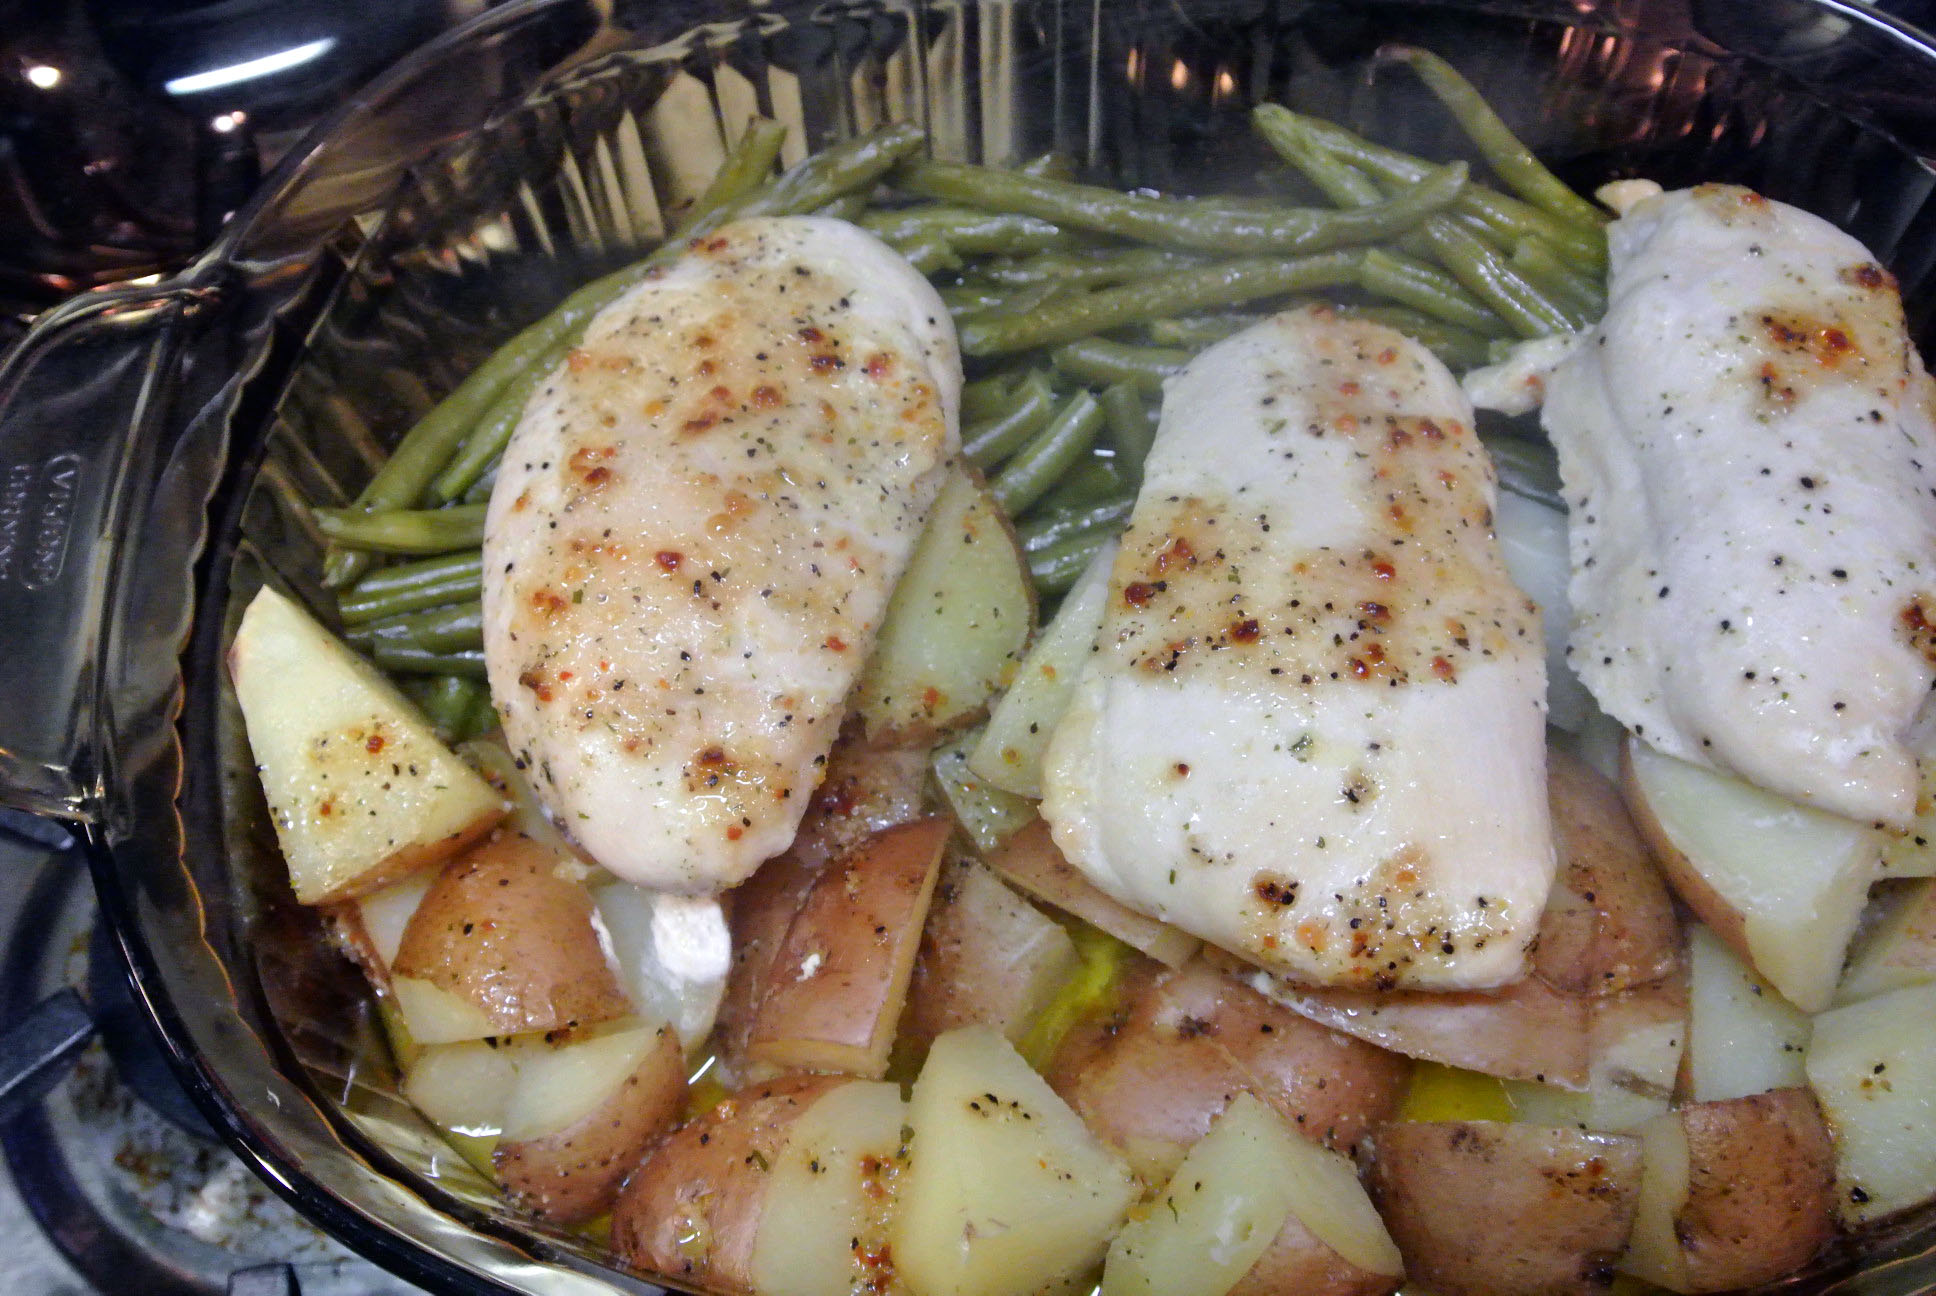 Italian Chicken with Green Beans and Potatoes